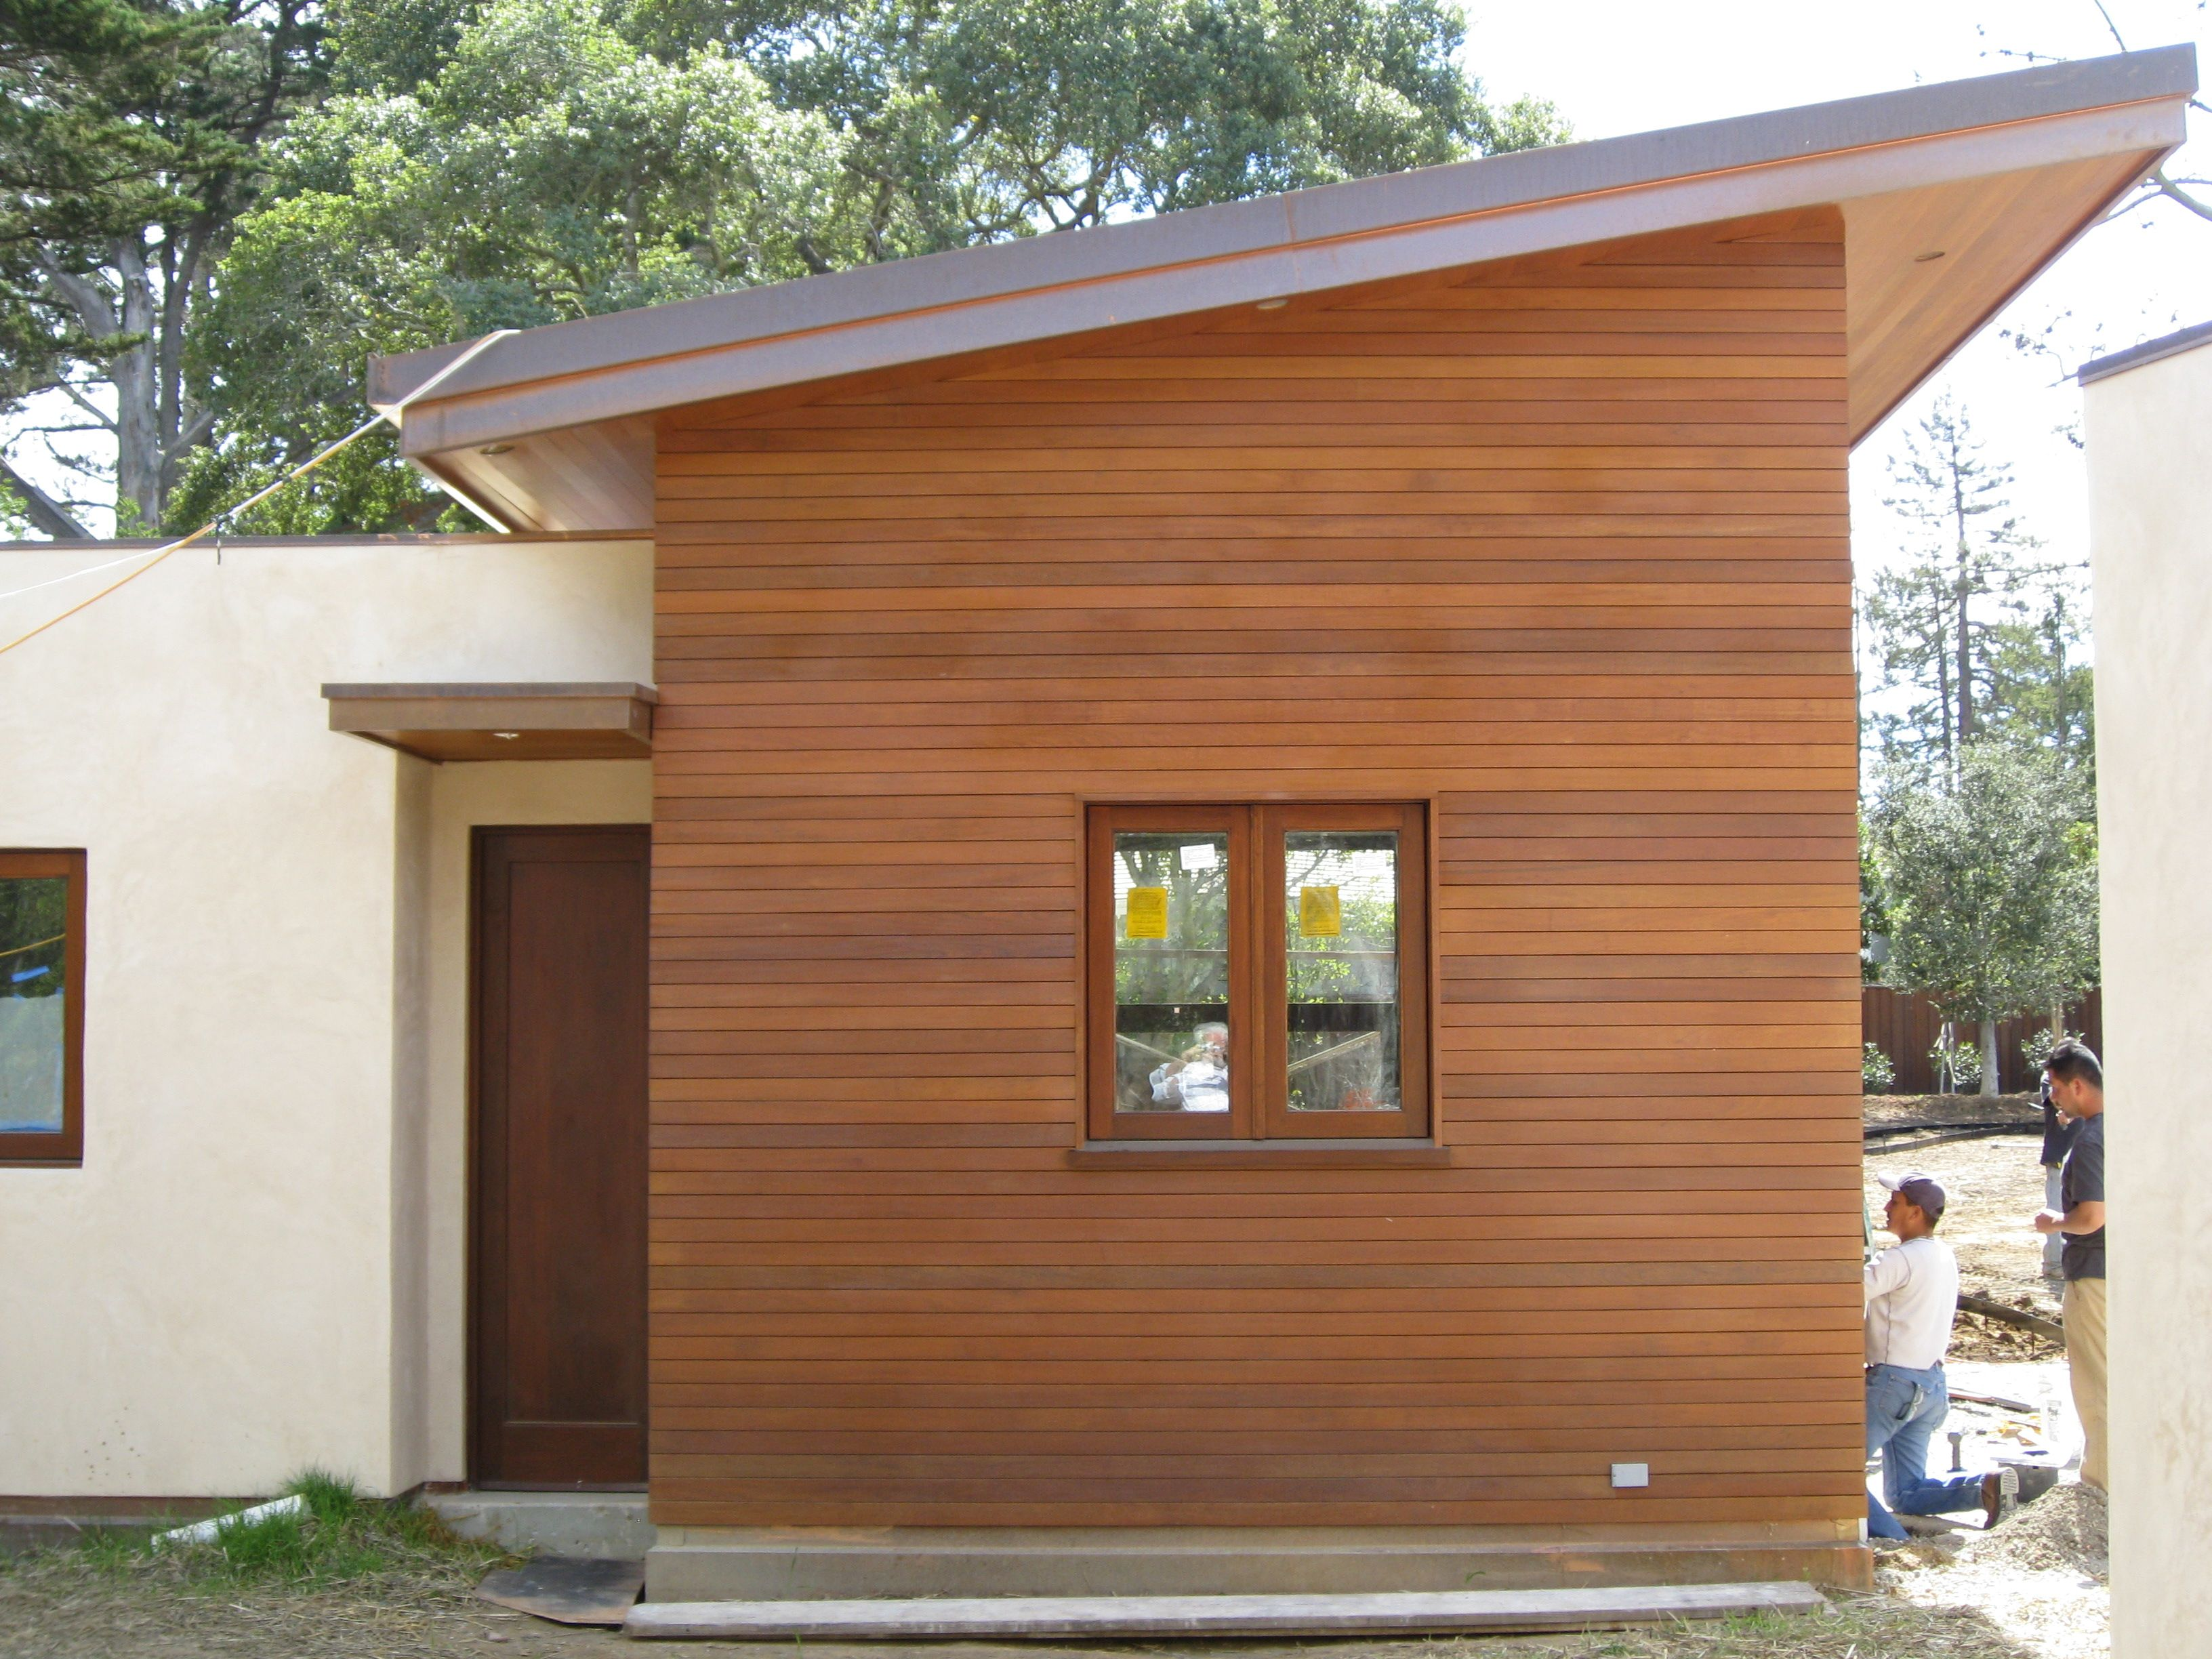 Ipe Siding Rainscreen Google Search House Siding Wood